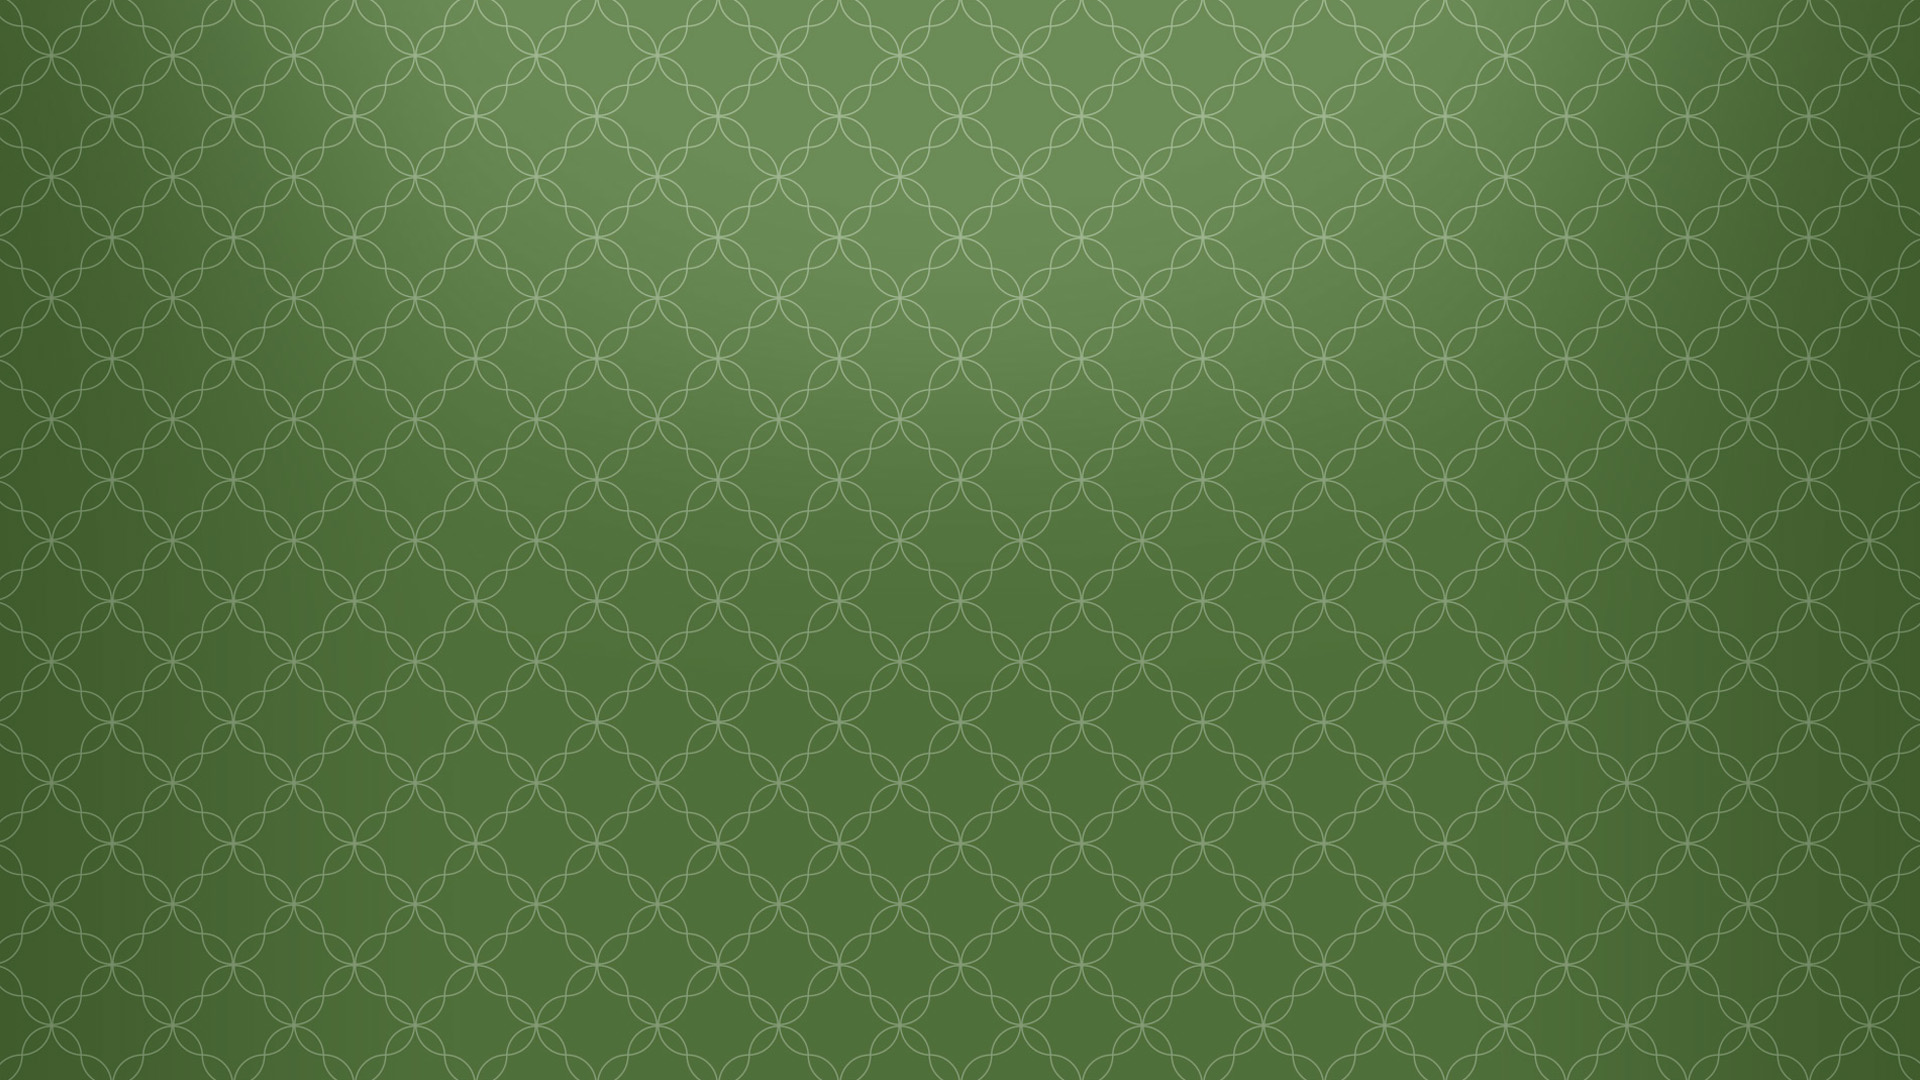 Download Olive Green Wallpaper Gallery